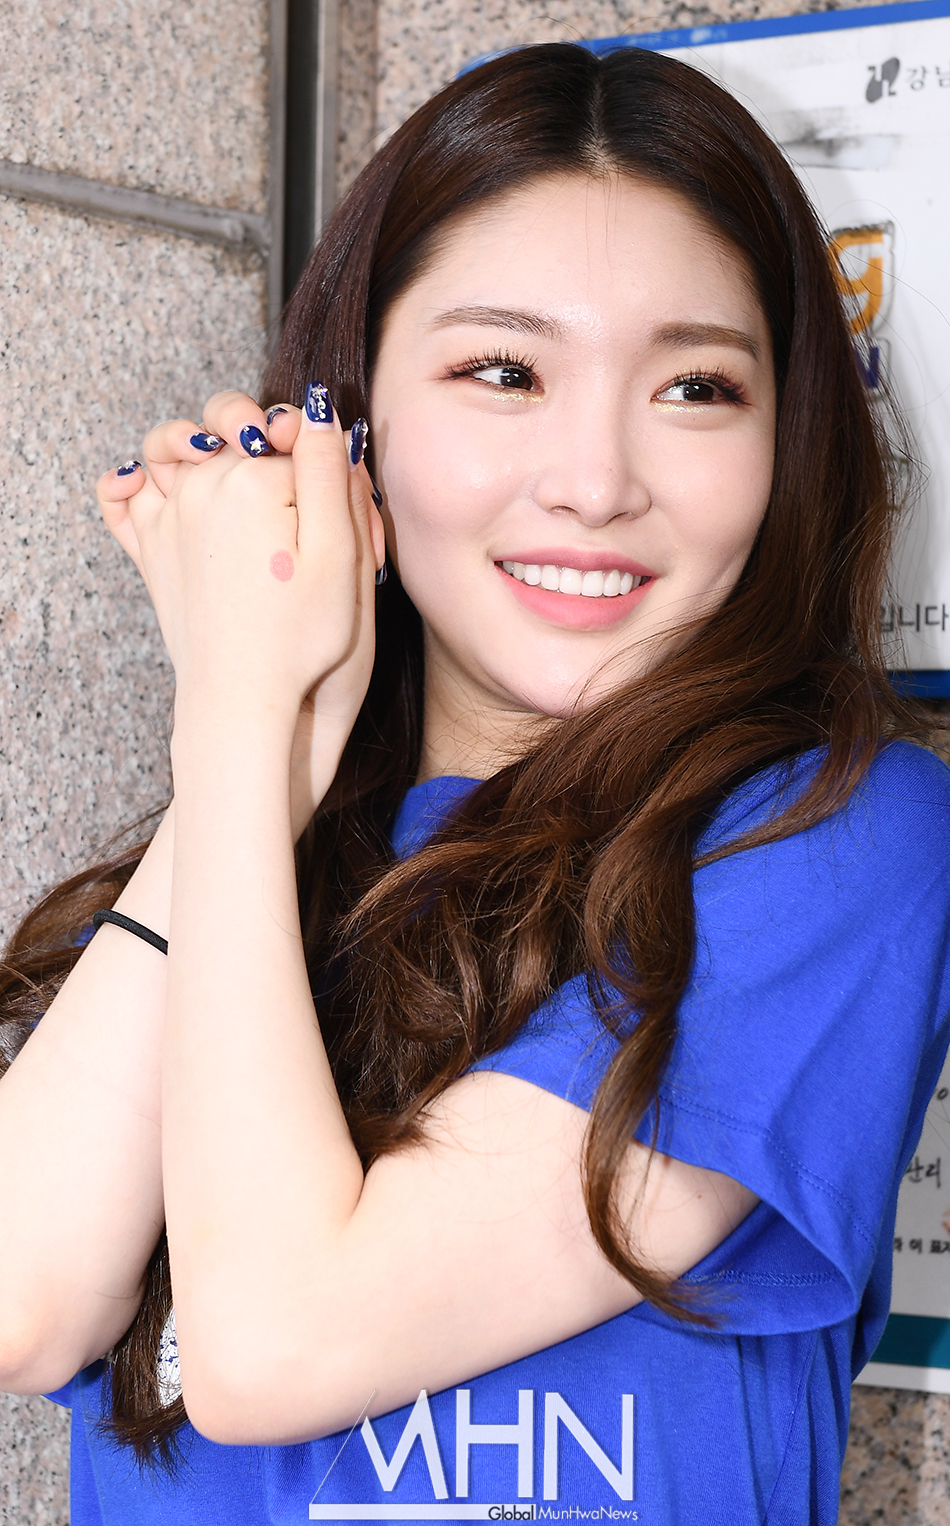 [MHN PHOTO] Chung Ha, 'I'm Happy I Voted!'